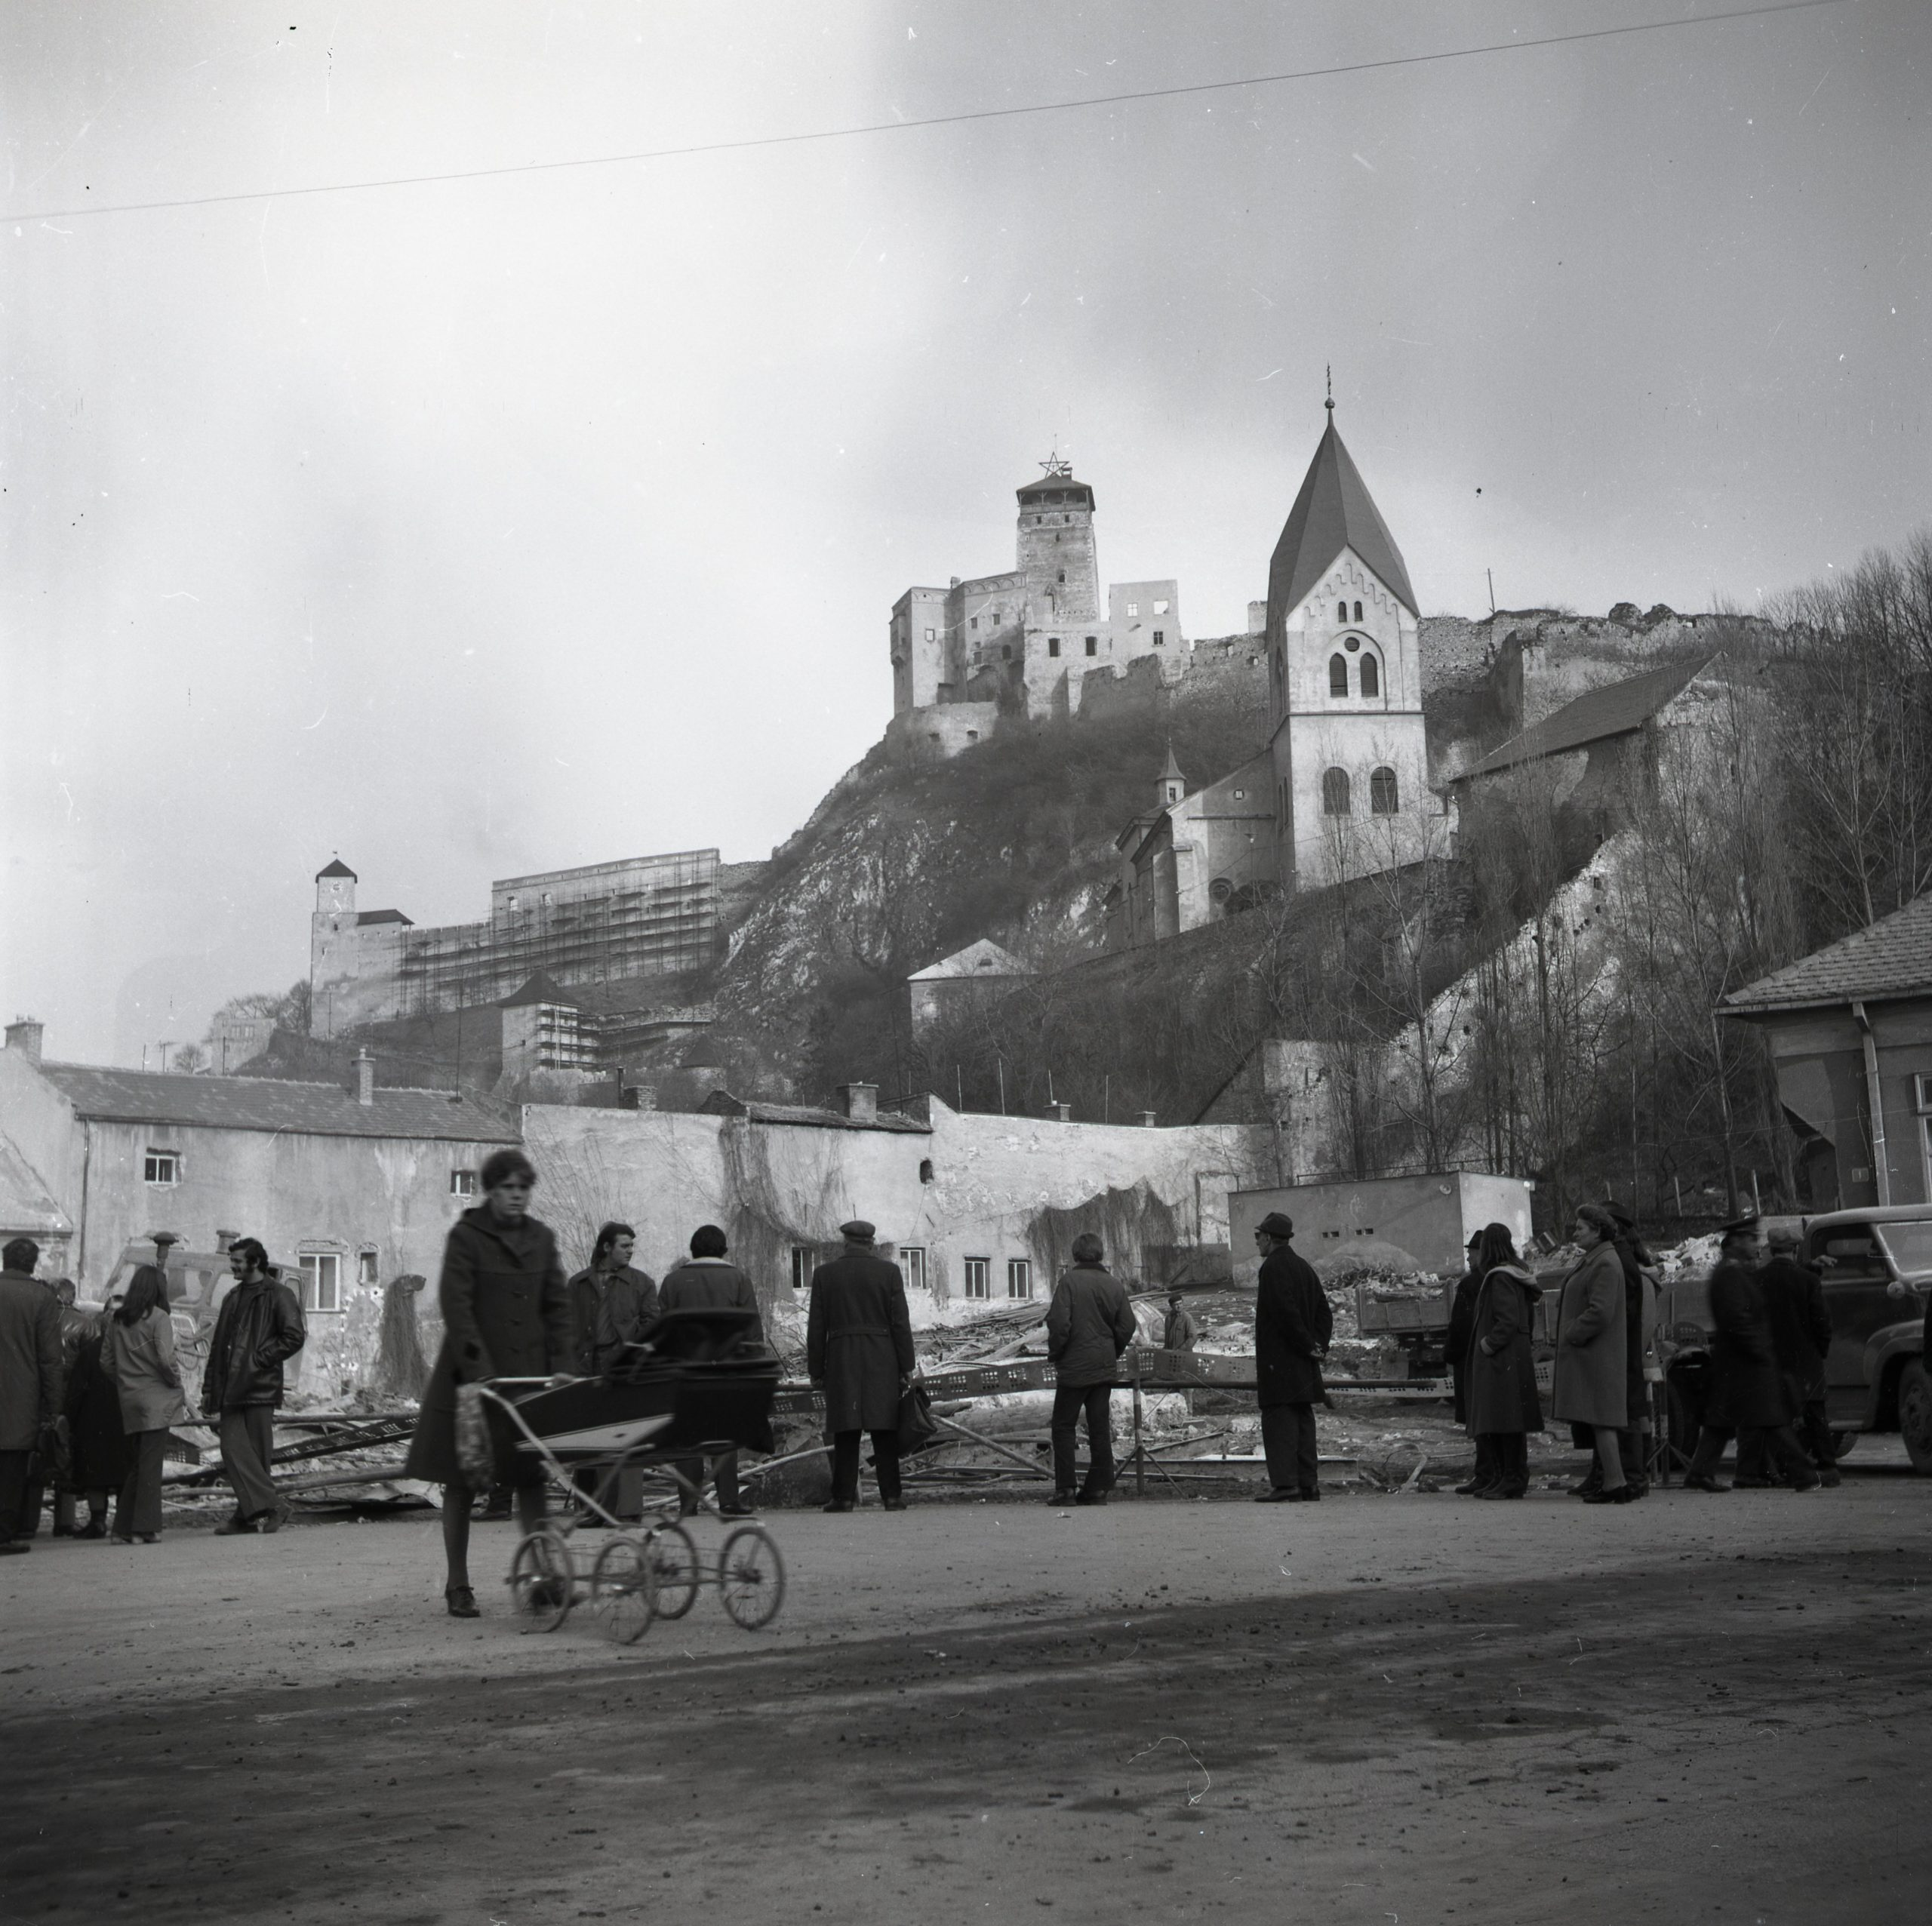 14. View of the city fortifications revealed after demolition, as seen from Štúrovo Square (1974).